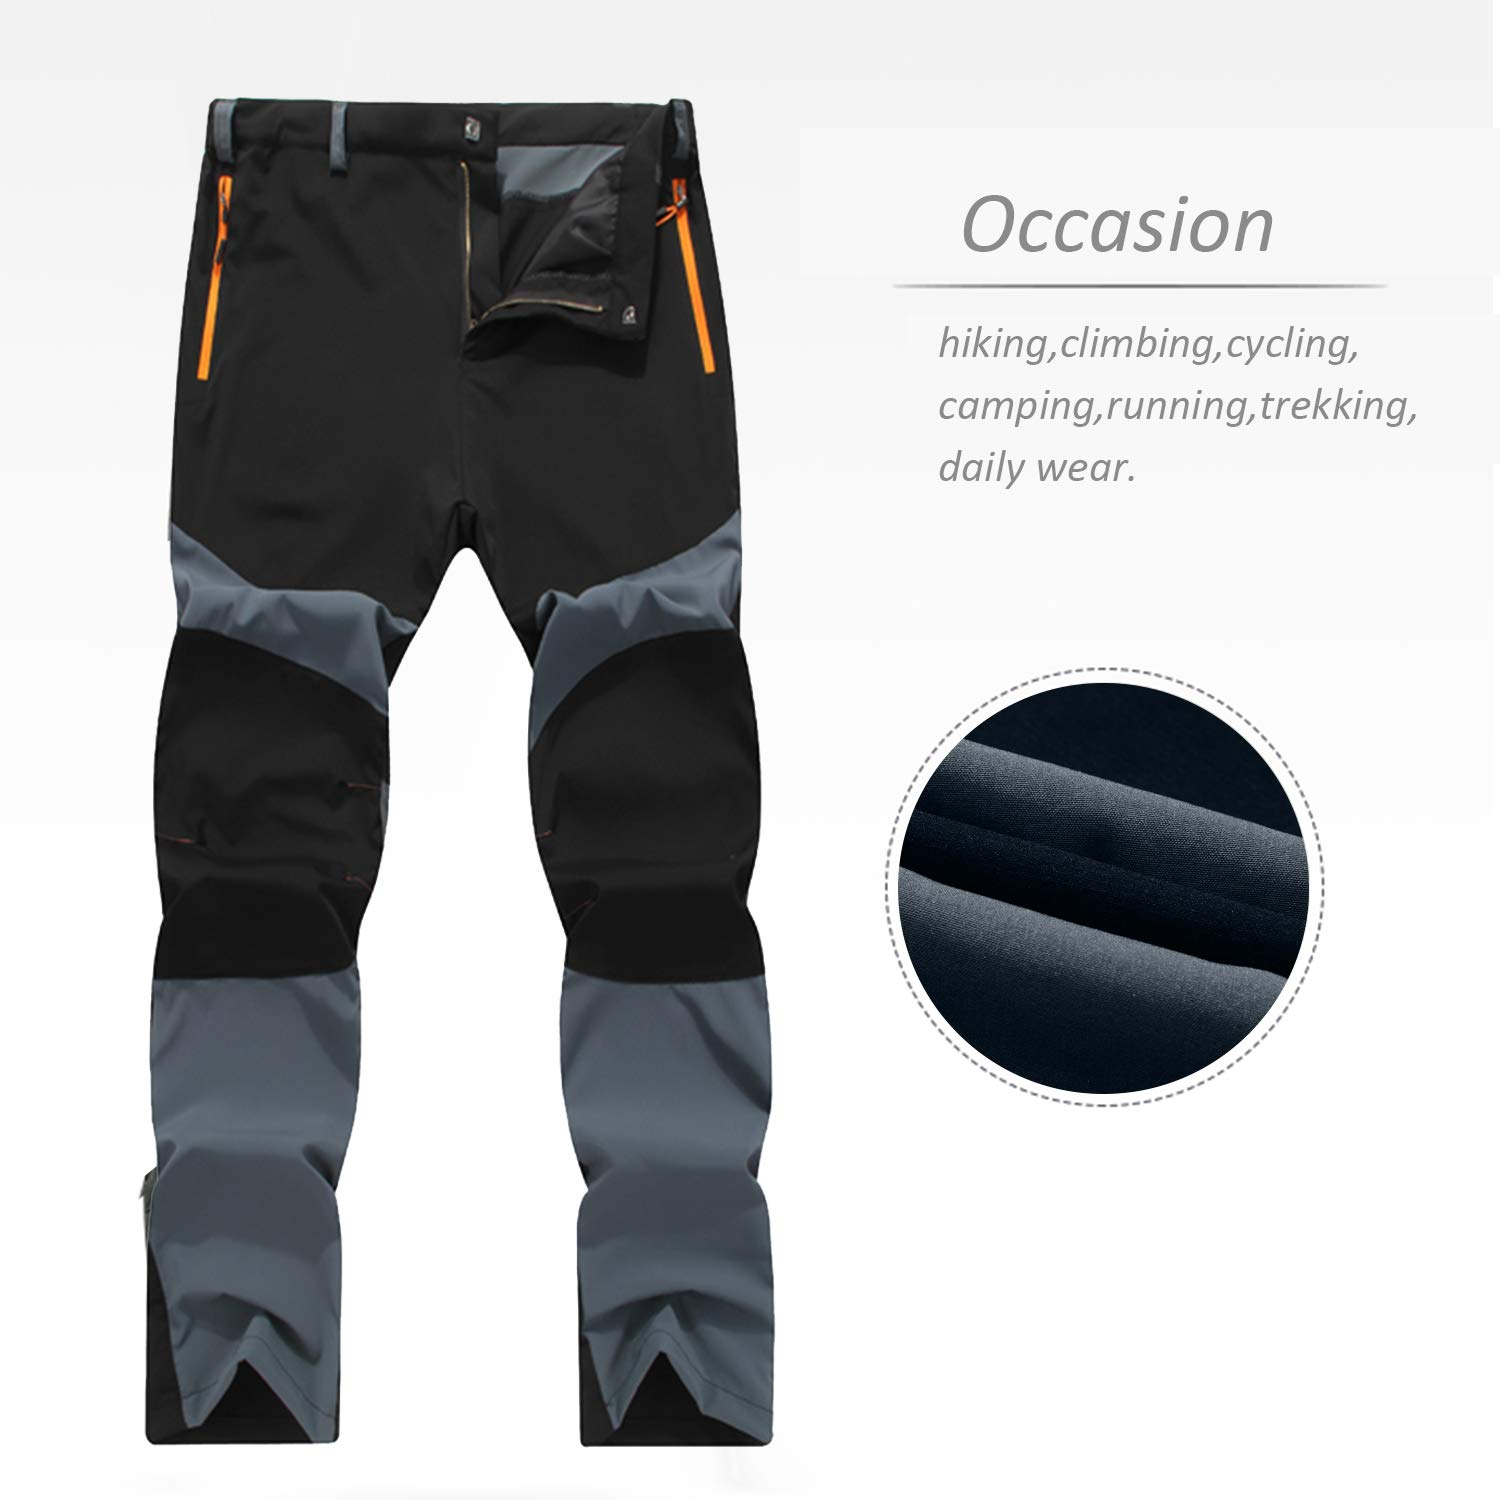 CHLNIX Mens Quick Dry Hiking Trousers Outdoor Lightweight Breathable Water Resistant Camping Trekking Running Cycling Walking Pants